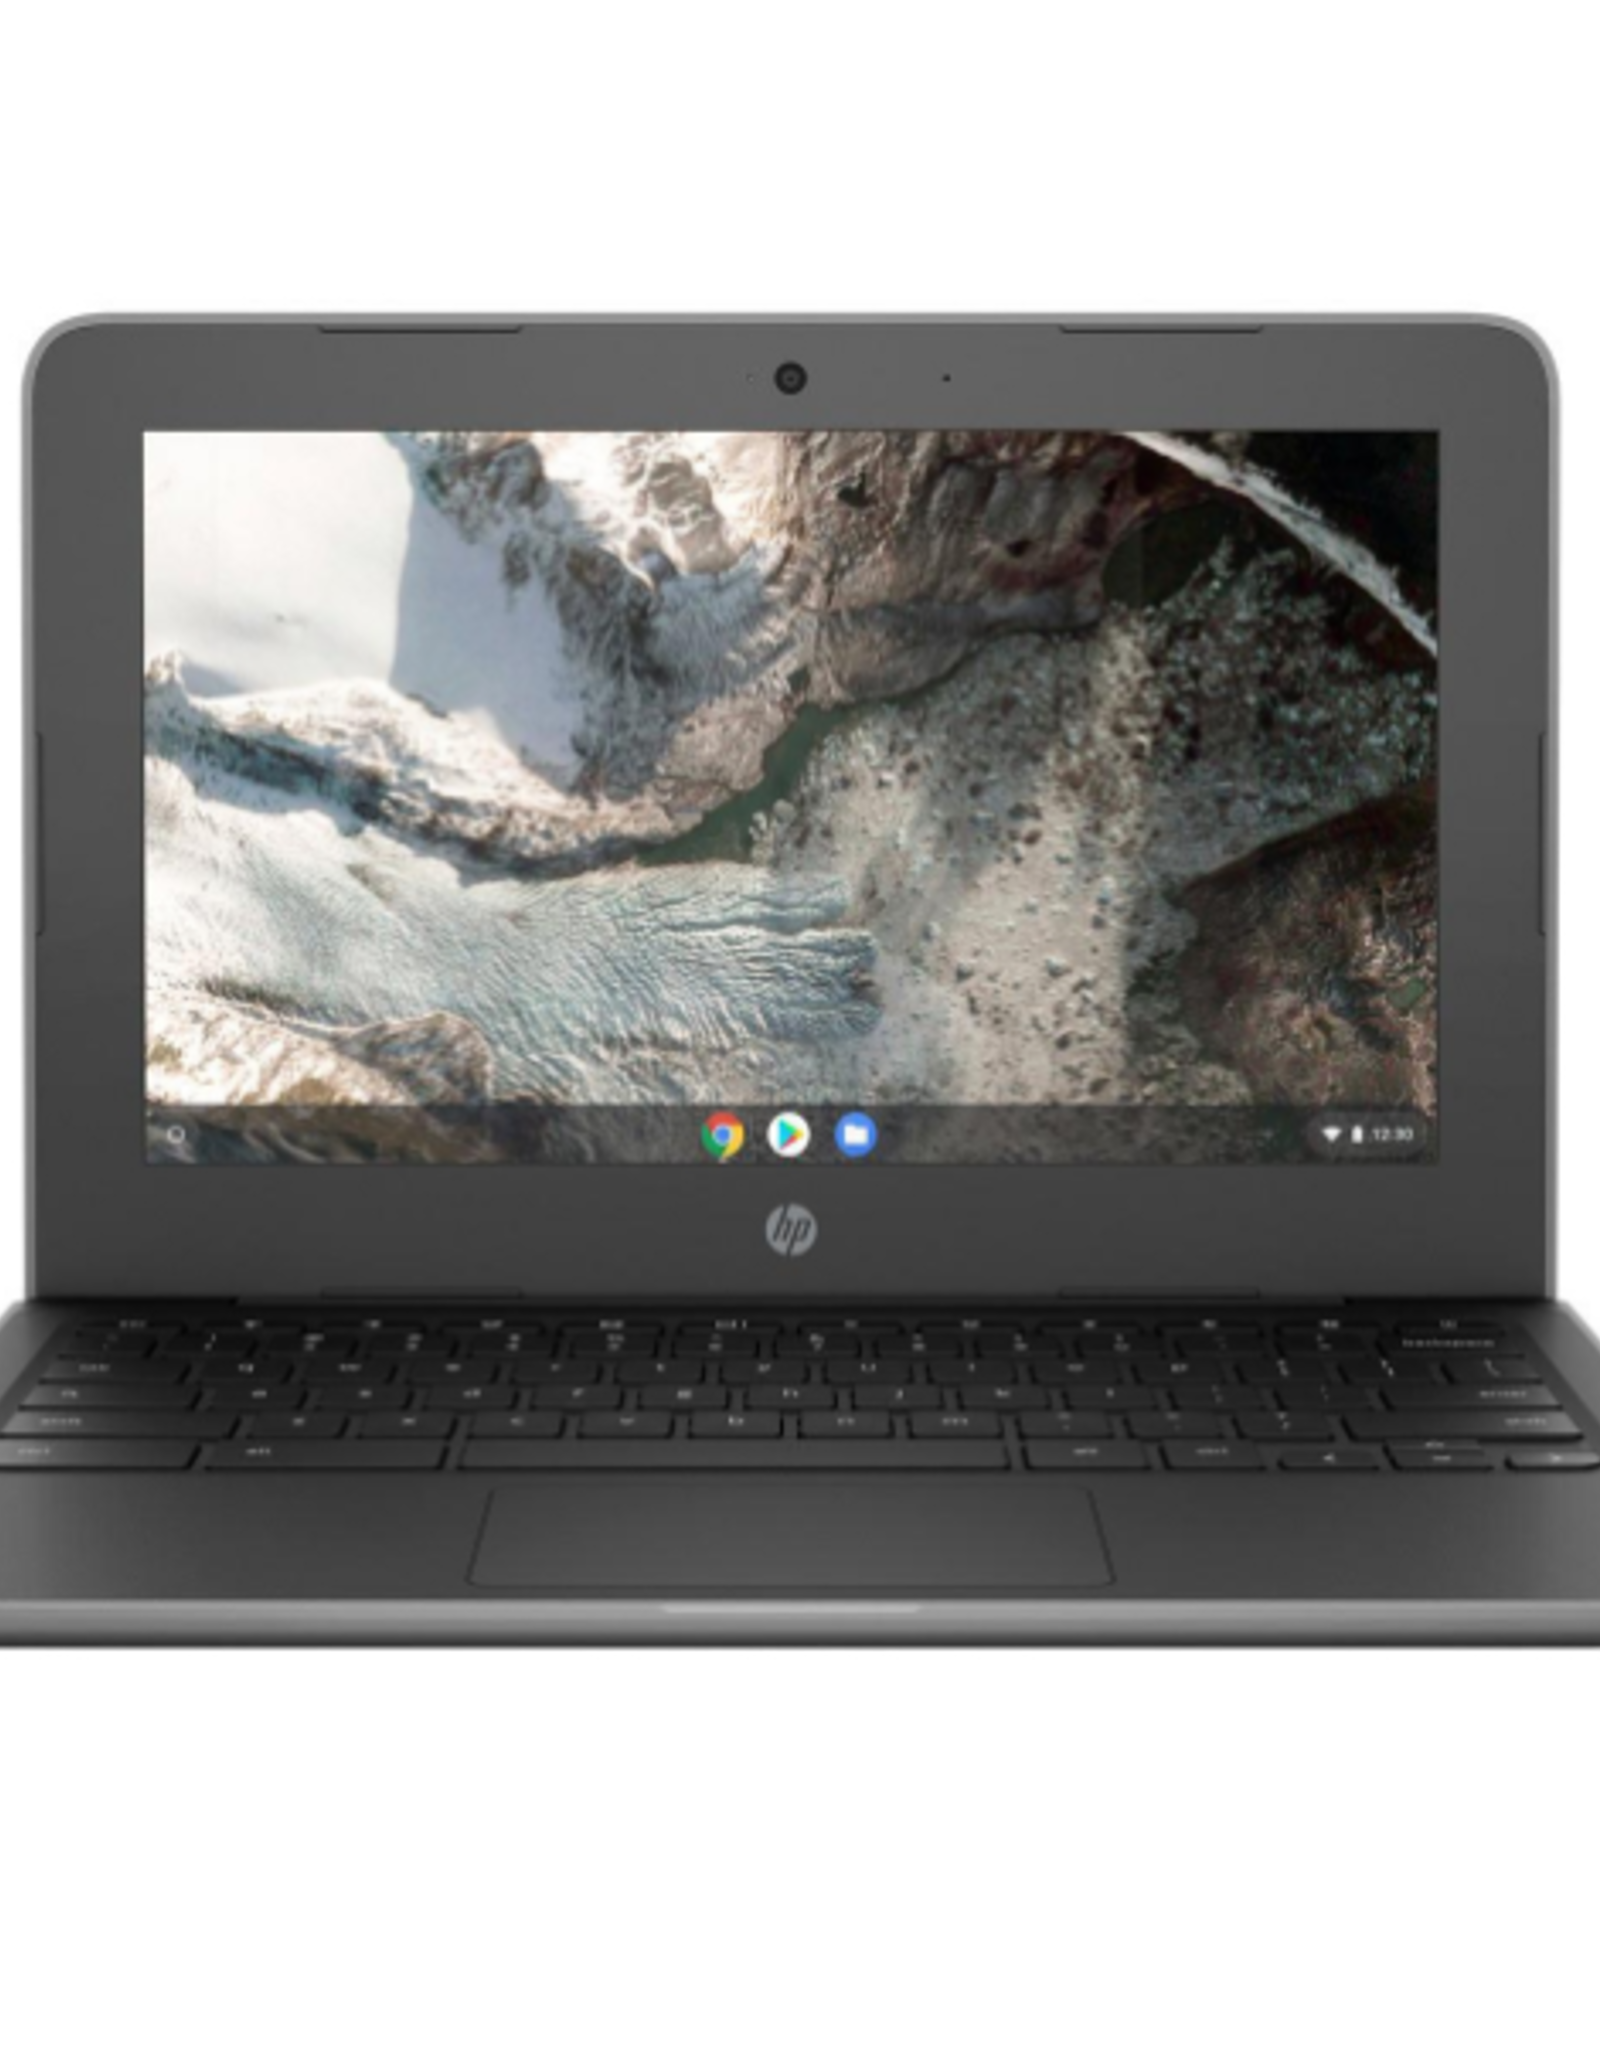 "HP HP - 11 G7 EE 11.6"" Chromebook - Gray (Intel Celeron N4000 / 16GB eMMC / 4GB RAM / Chrome OS) 